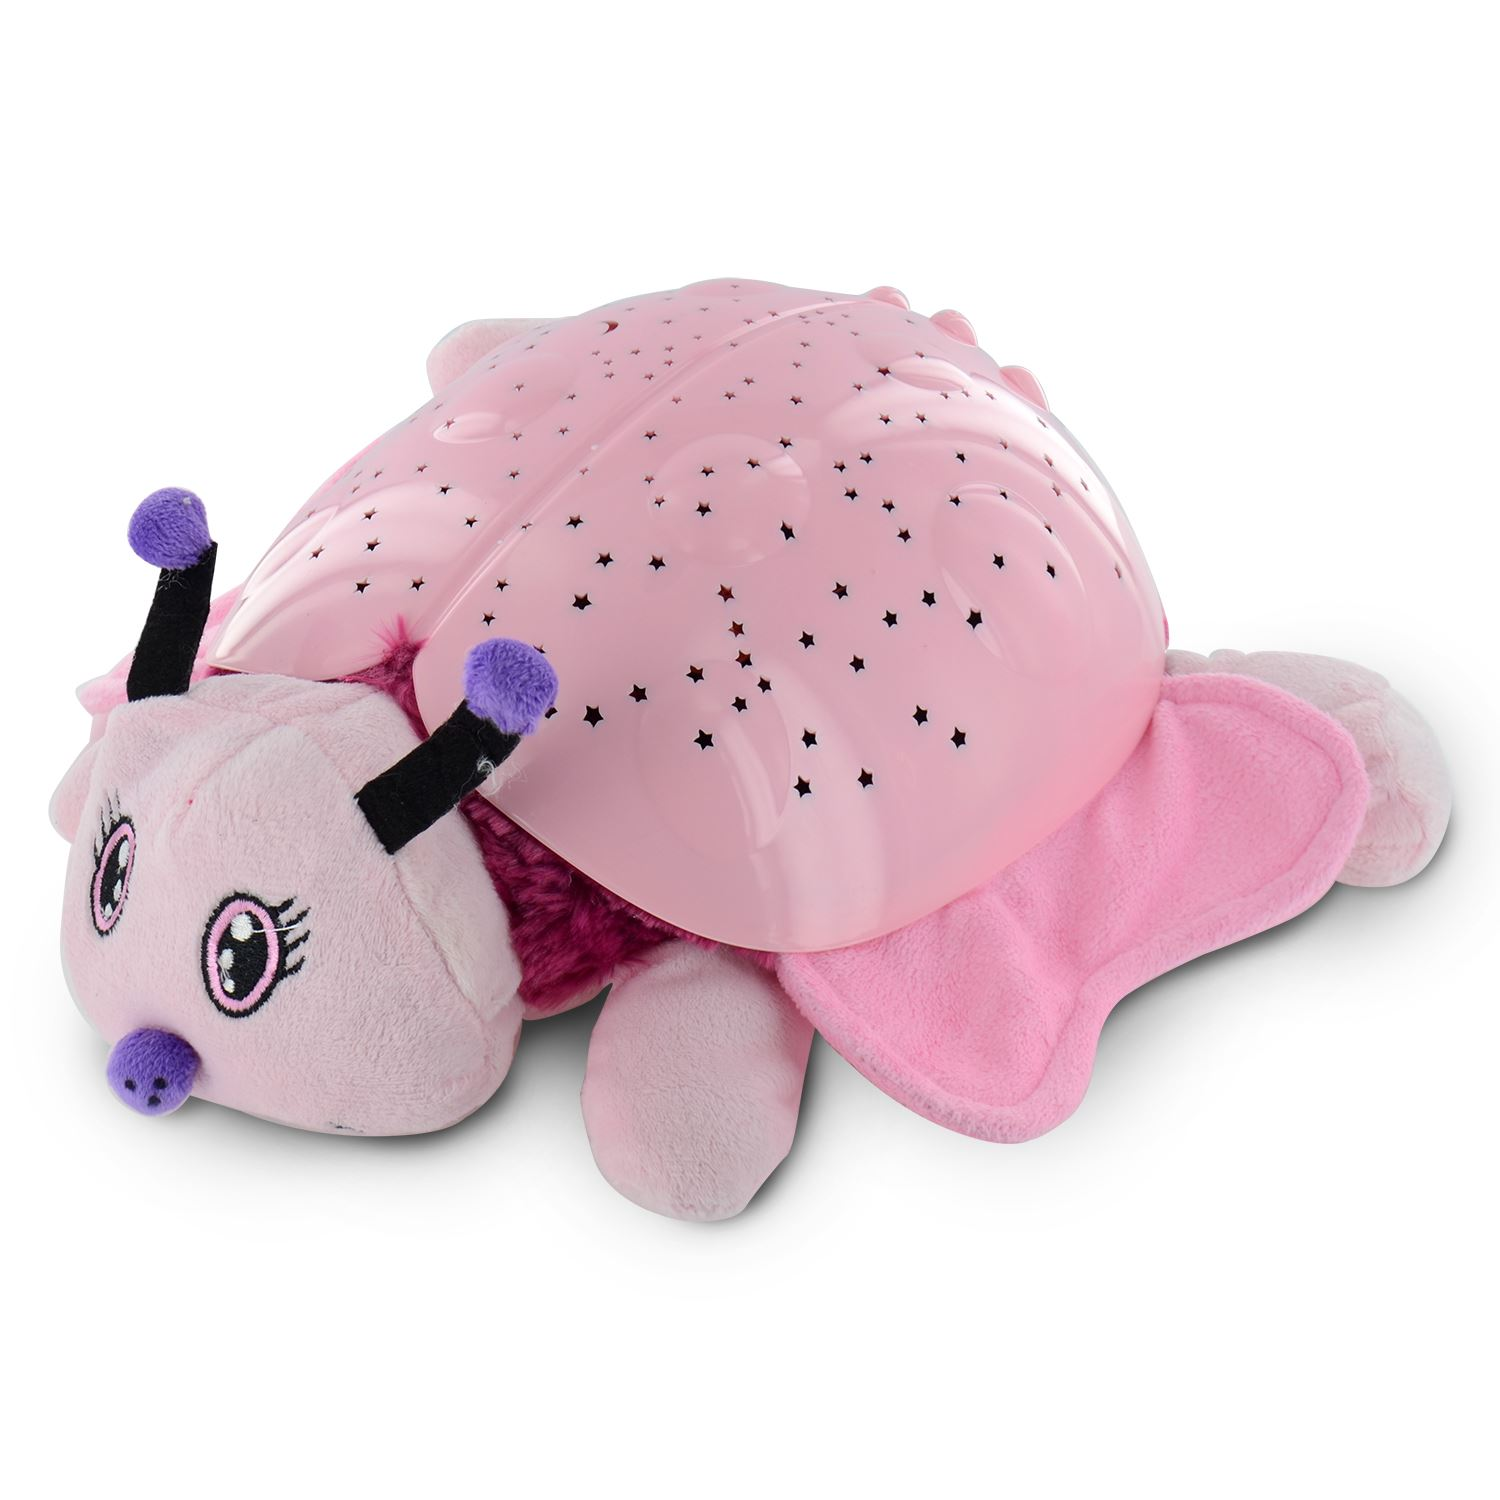 Animal Pillow That Lights Up : New Starry Pets LIght Up Soft Toy Night Sky projection Lullaby Cuddle pillow eBay